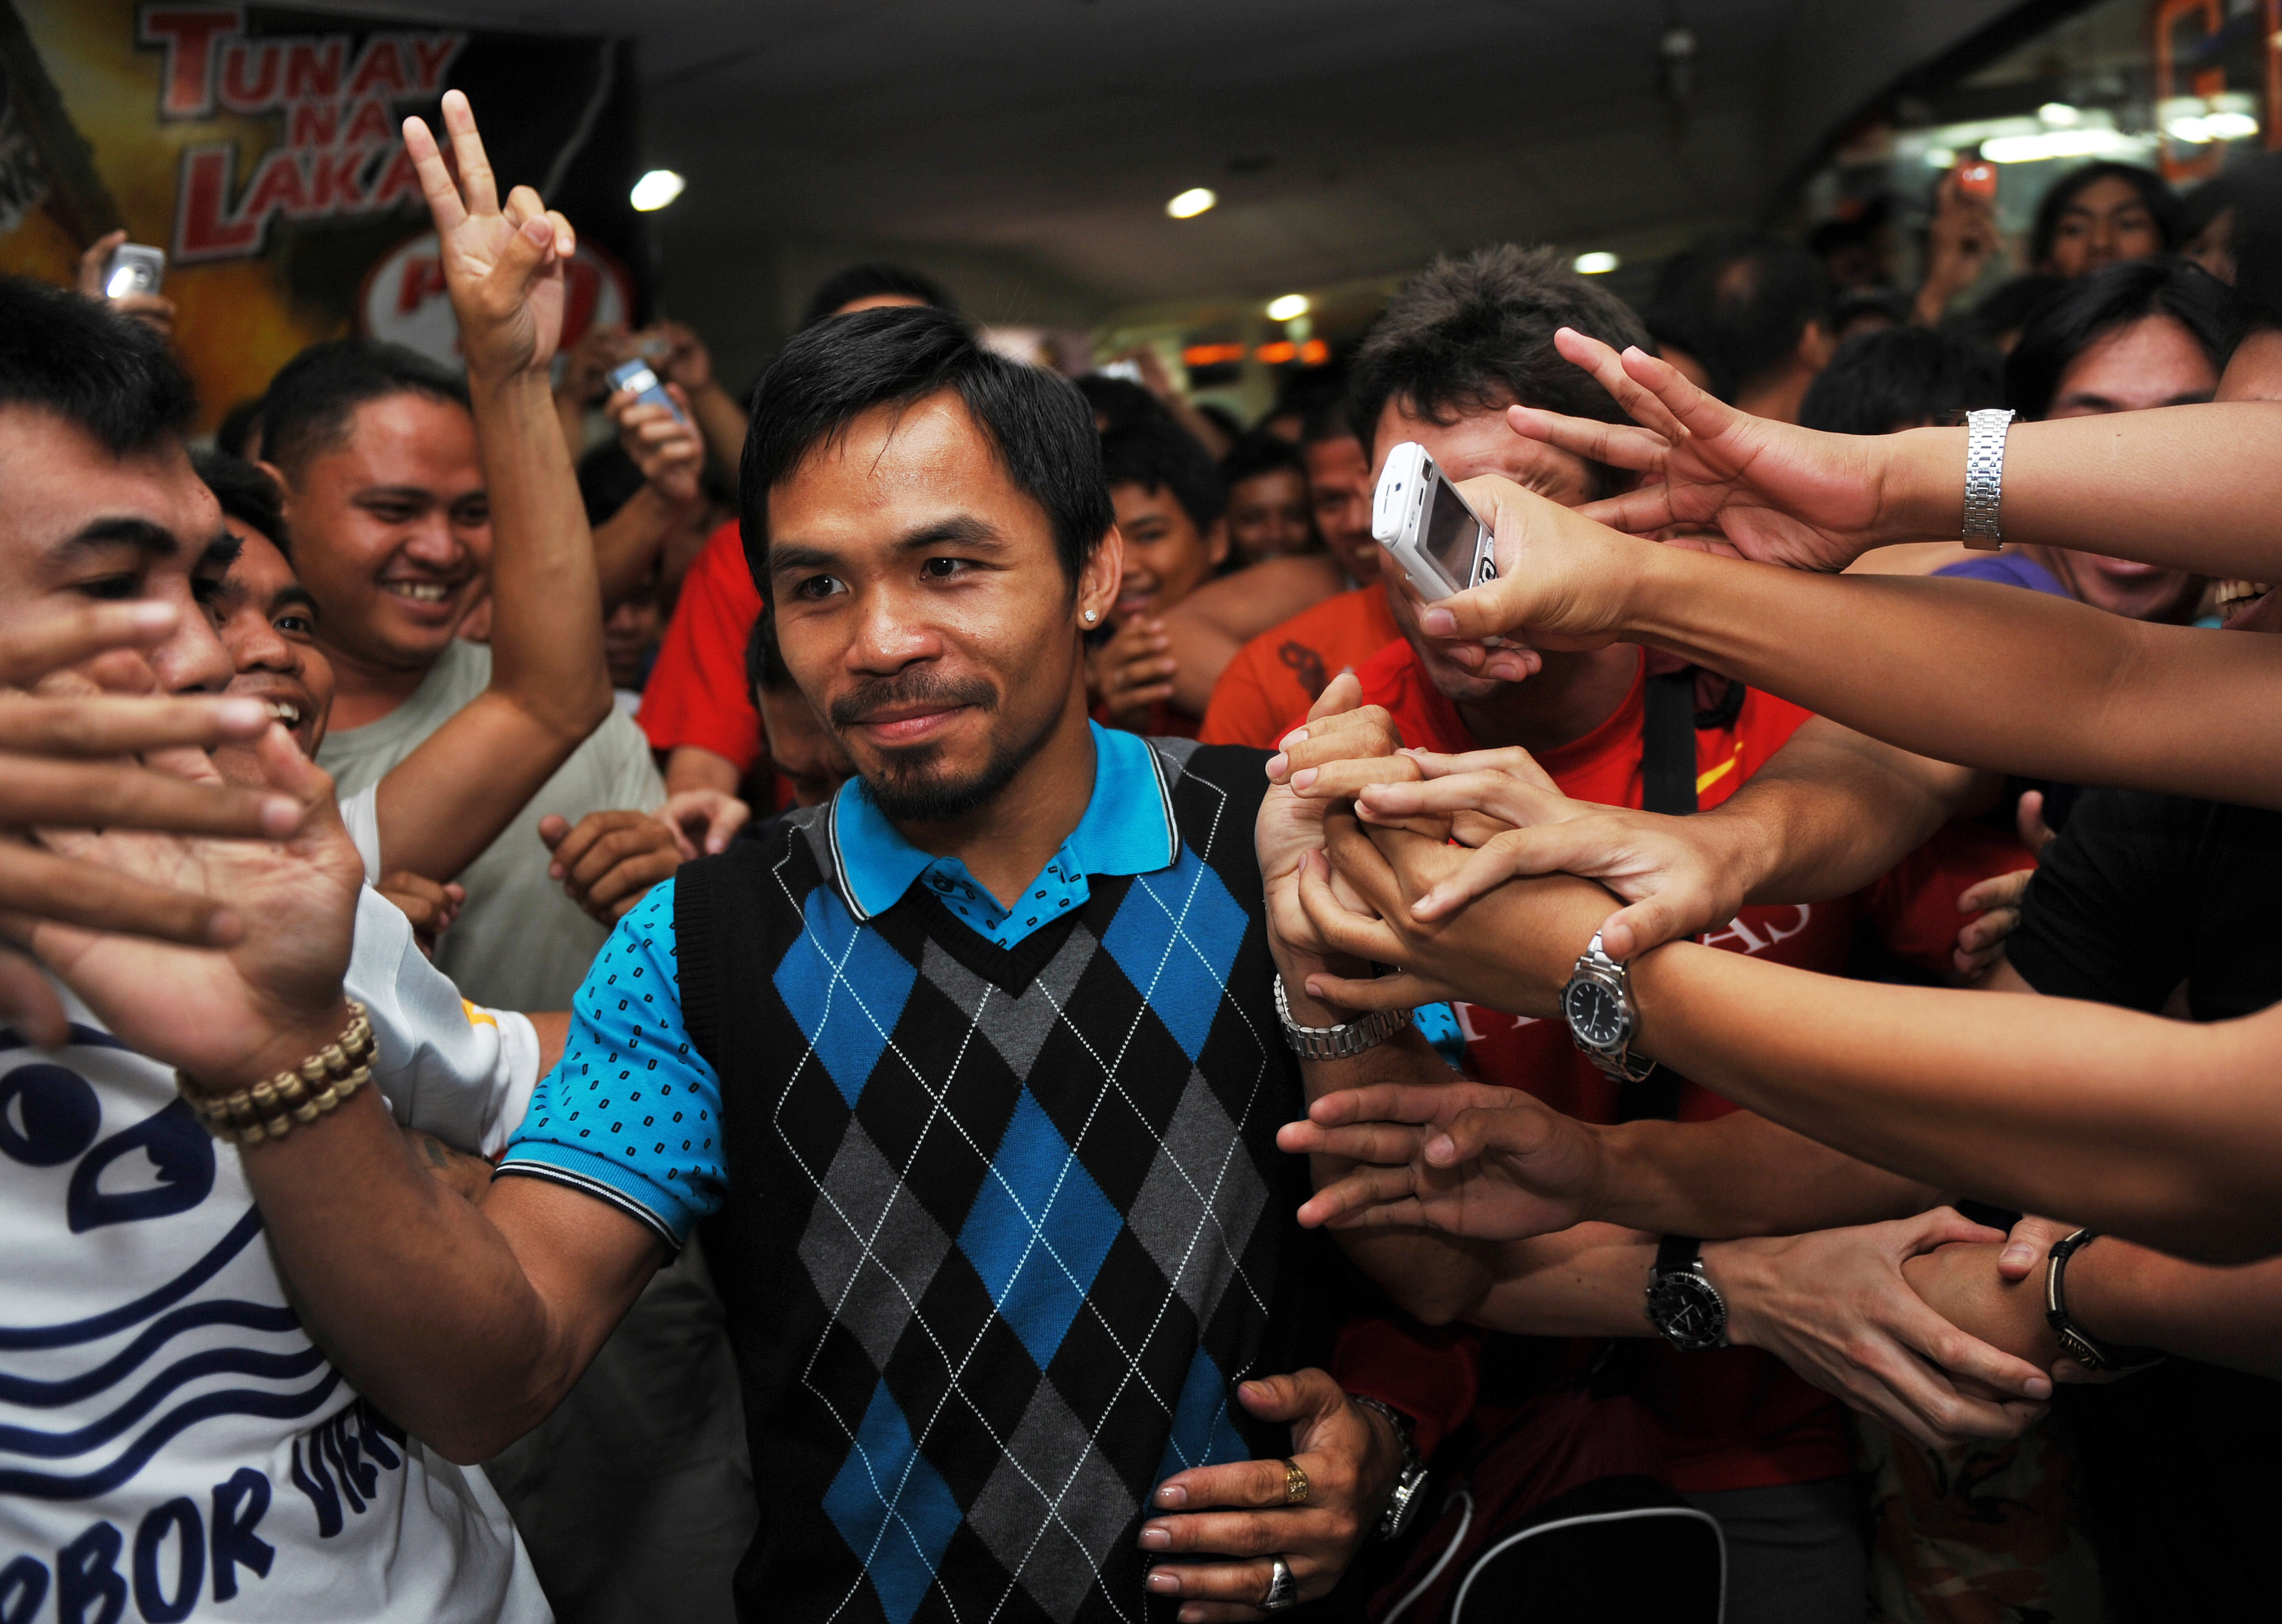 To go with AFP story by Mynardo Macaraig Philippine boxing hero Manny Pacquiao (C) is mobbed by fans after a training session outside a gym in Manila on October 22, 2009.  For the Philippines, boxer Manny Pacquiao is more than a sports champion. His fans, the media and politicians see him as nothing less than a national hero whose feats can lift the nation.        AFP PHOTO/TED ALJIBE (Photo credit should read TED ALJIBE/AFP/Getty Images)